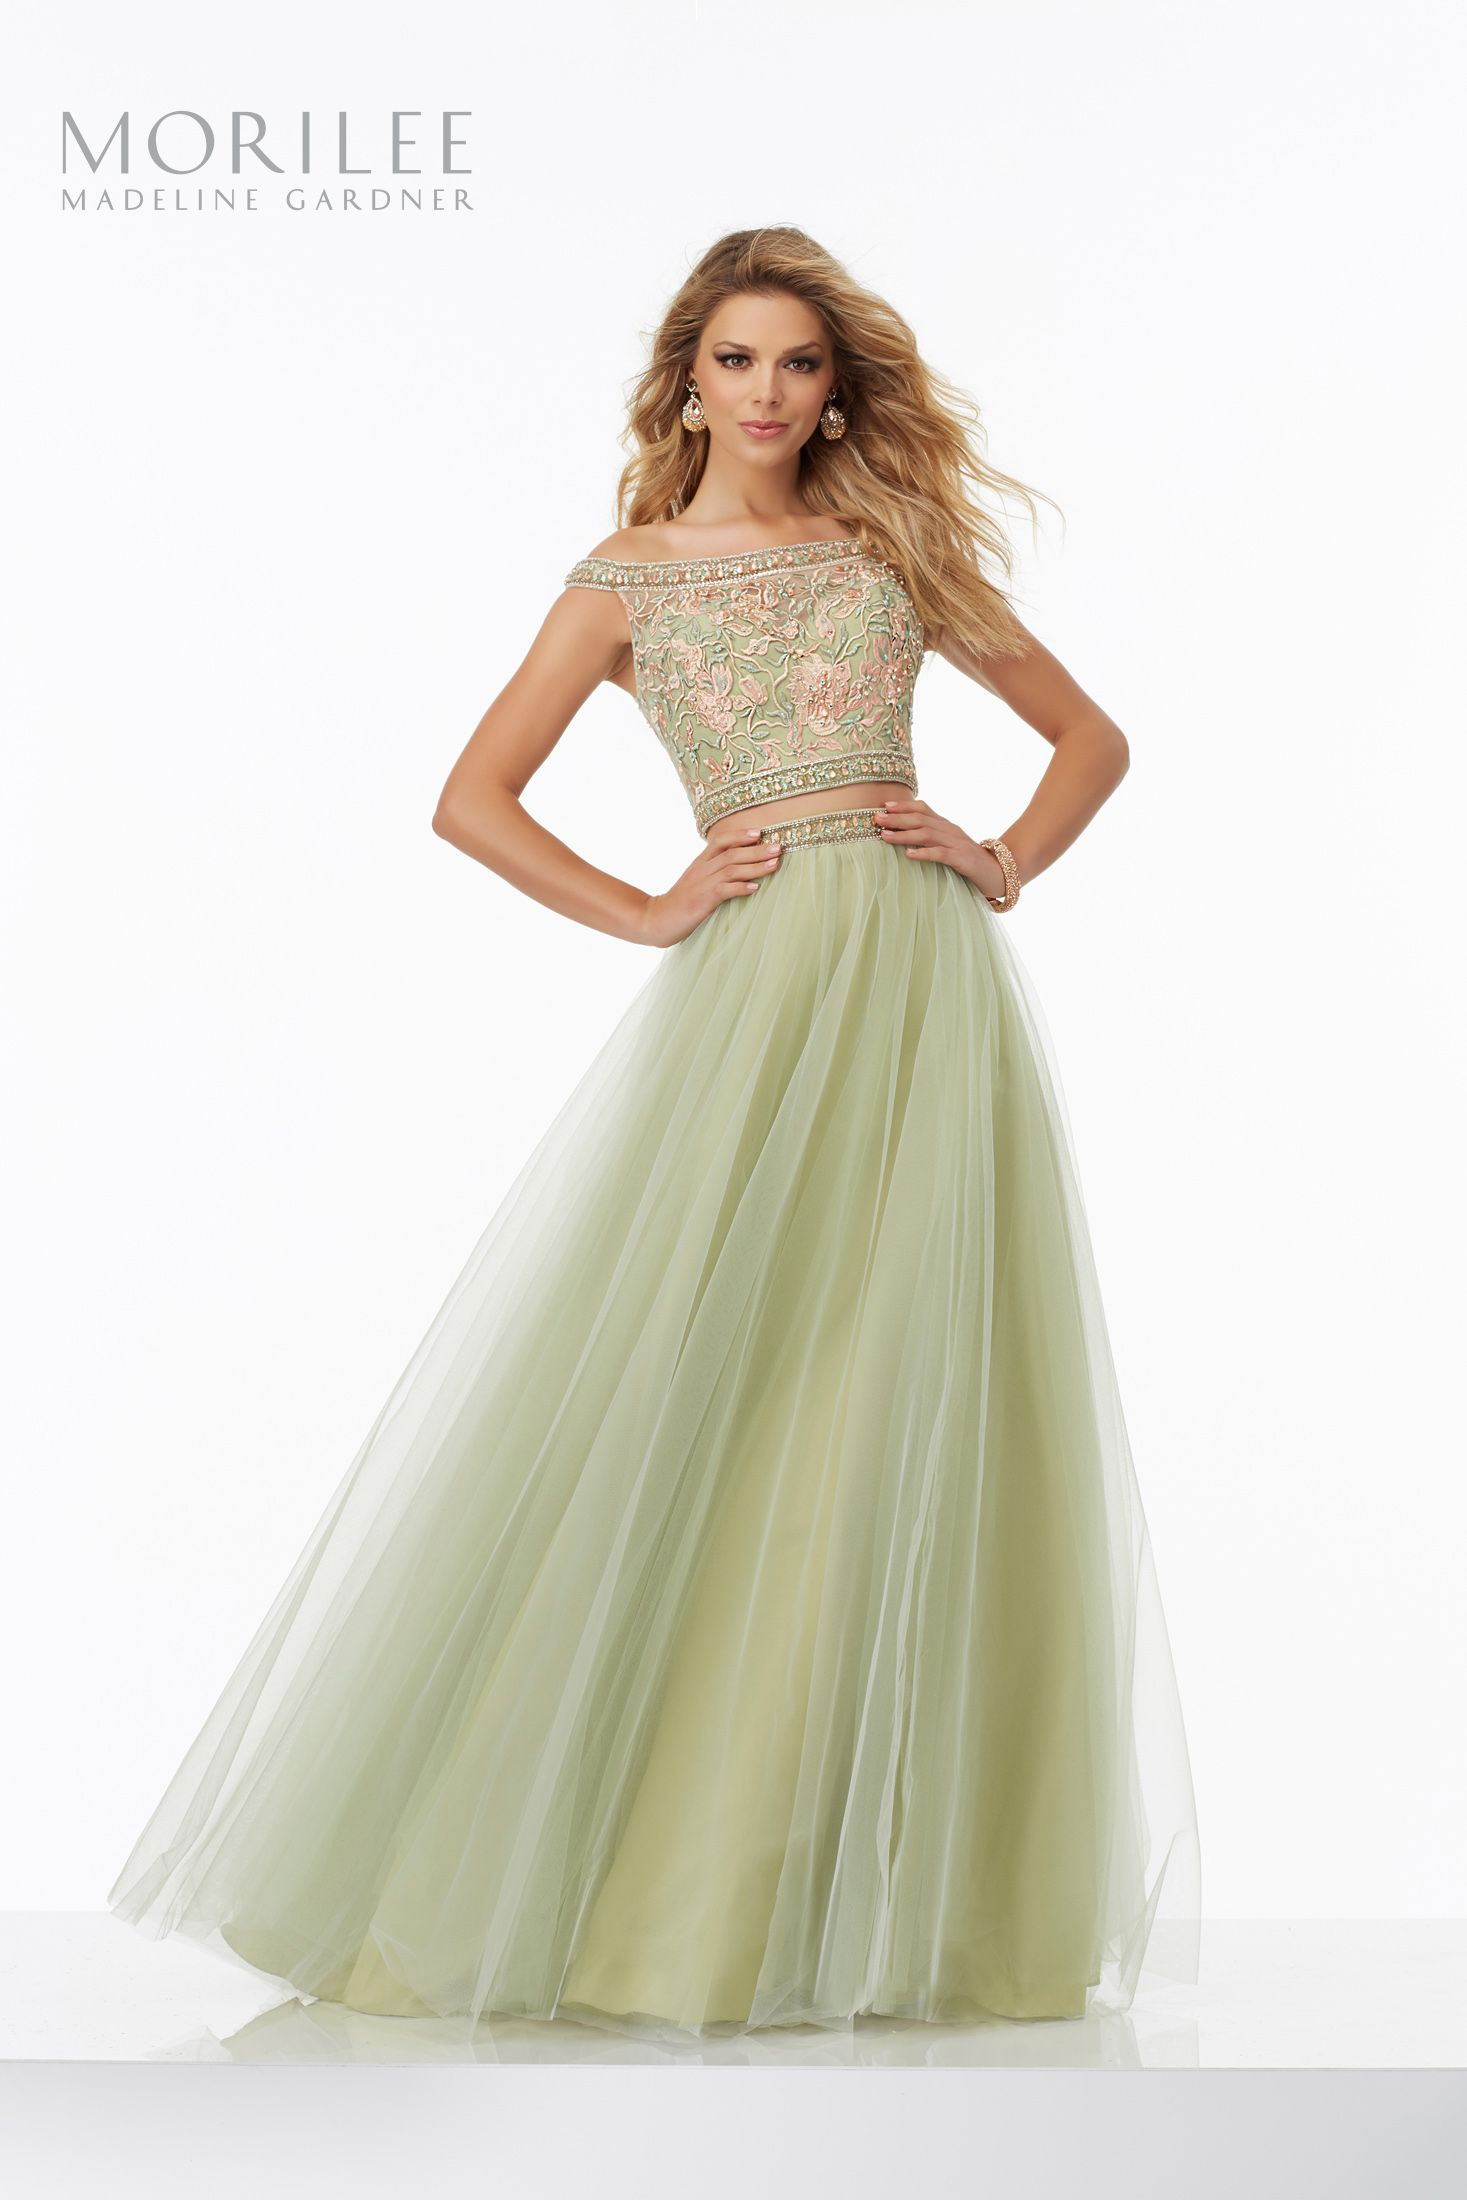 Green dress prom  Pin by Morilee UK on MORILEE PROM SS  Pinterest  Prom